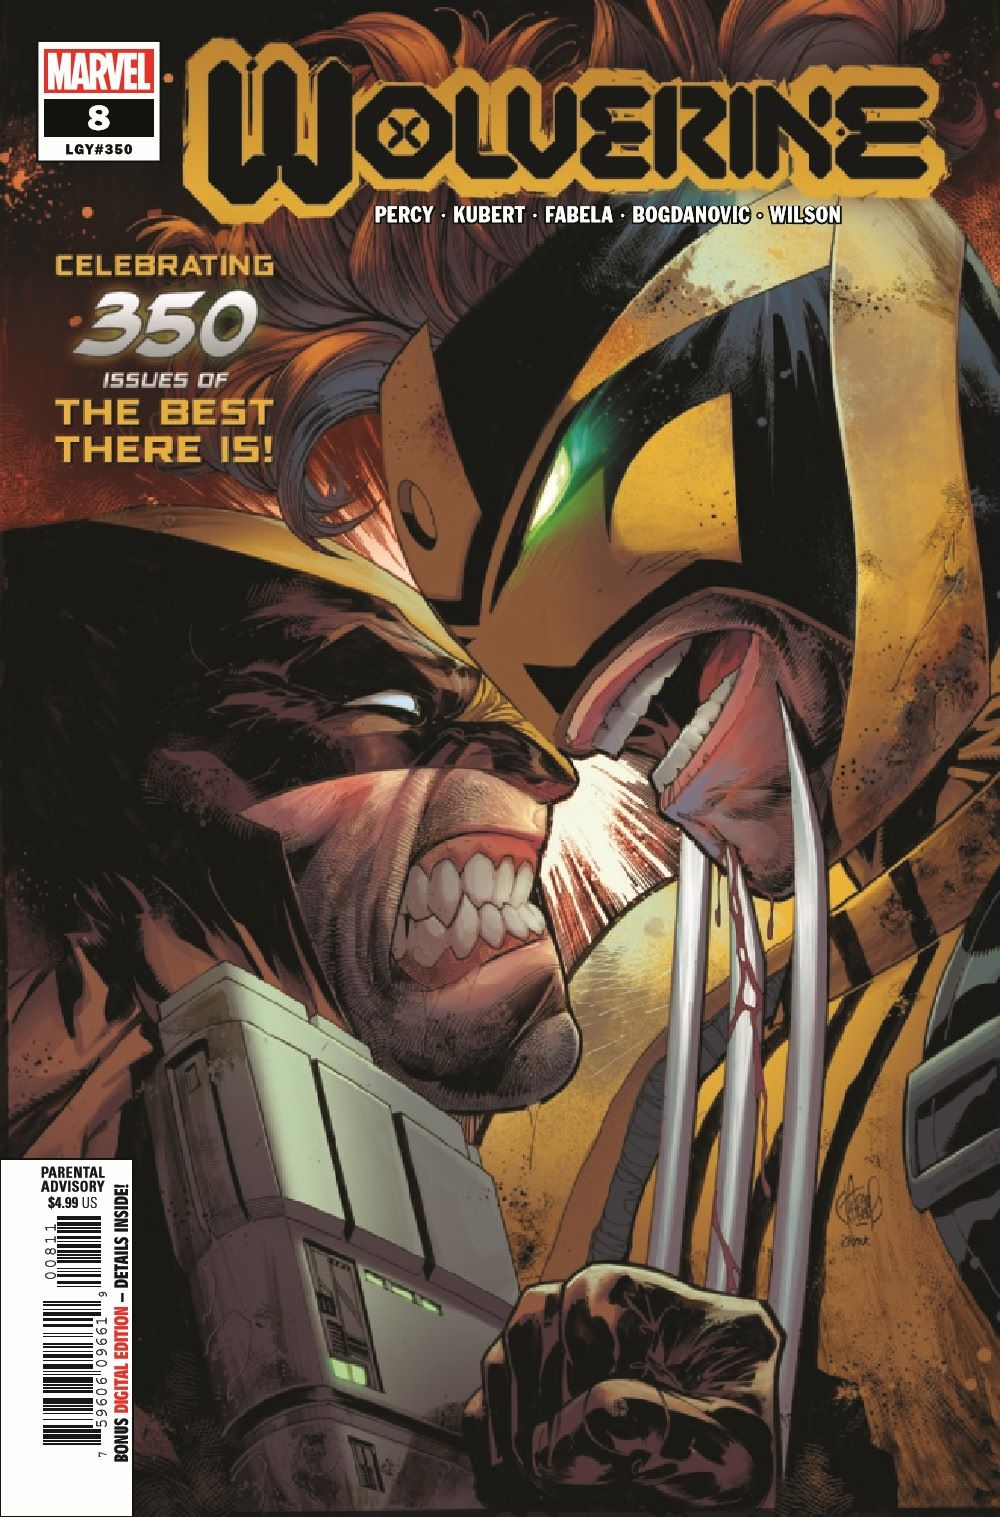 WOLV2020008_Preview-1 ComicList Previews: WOLVERINE #8